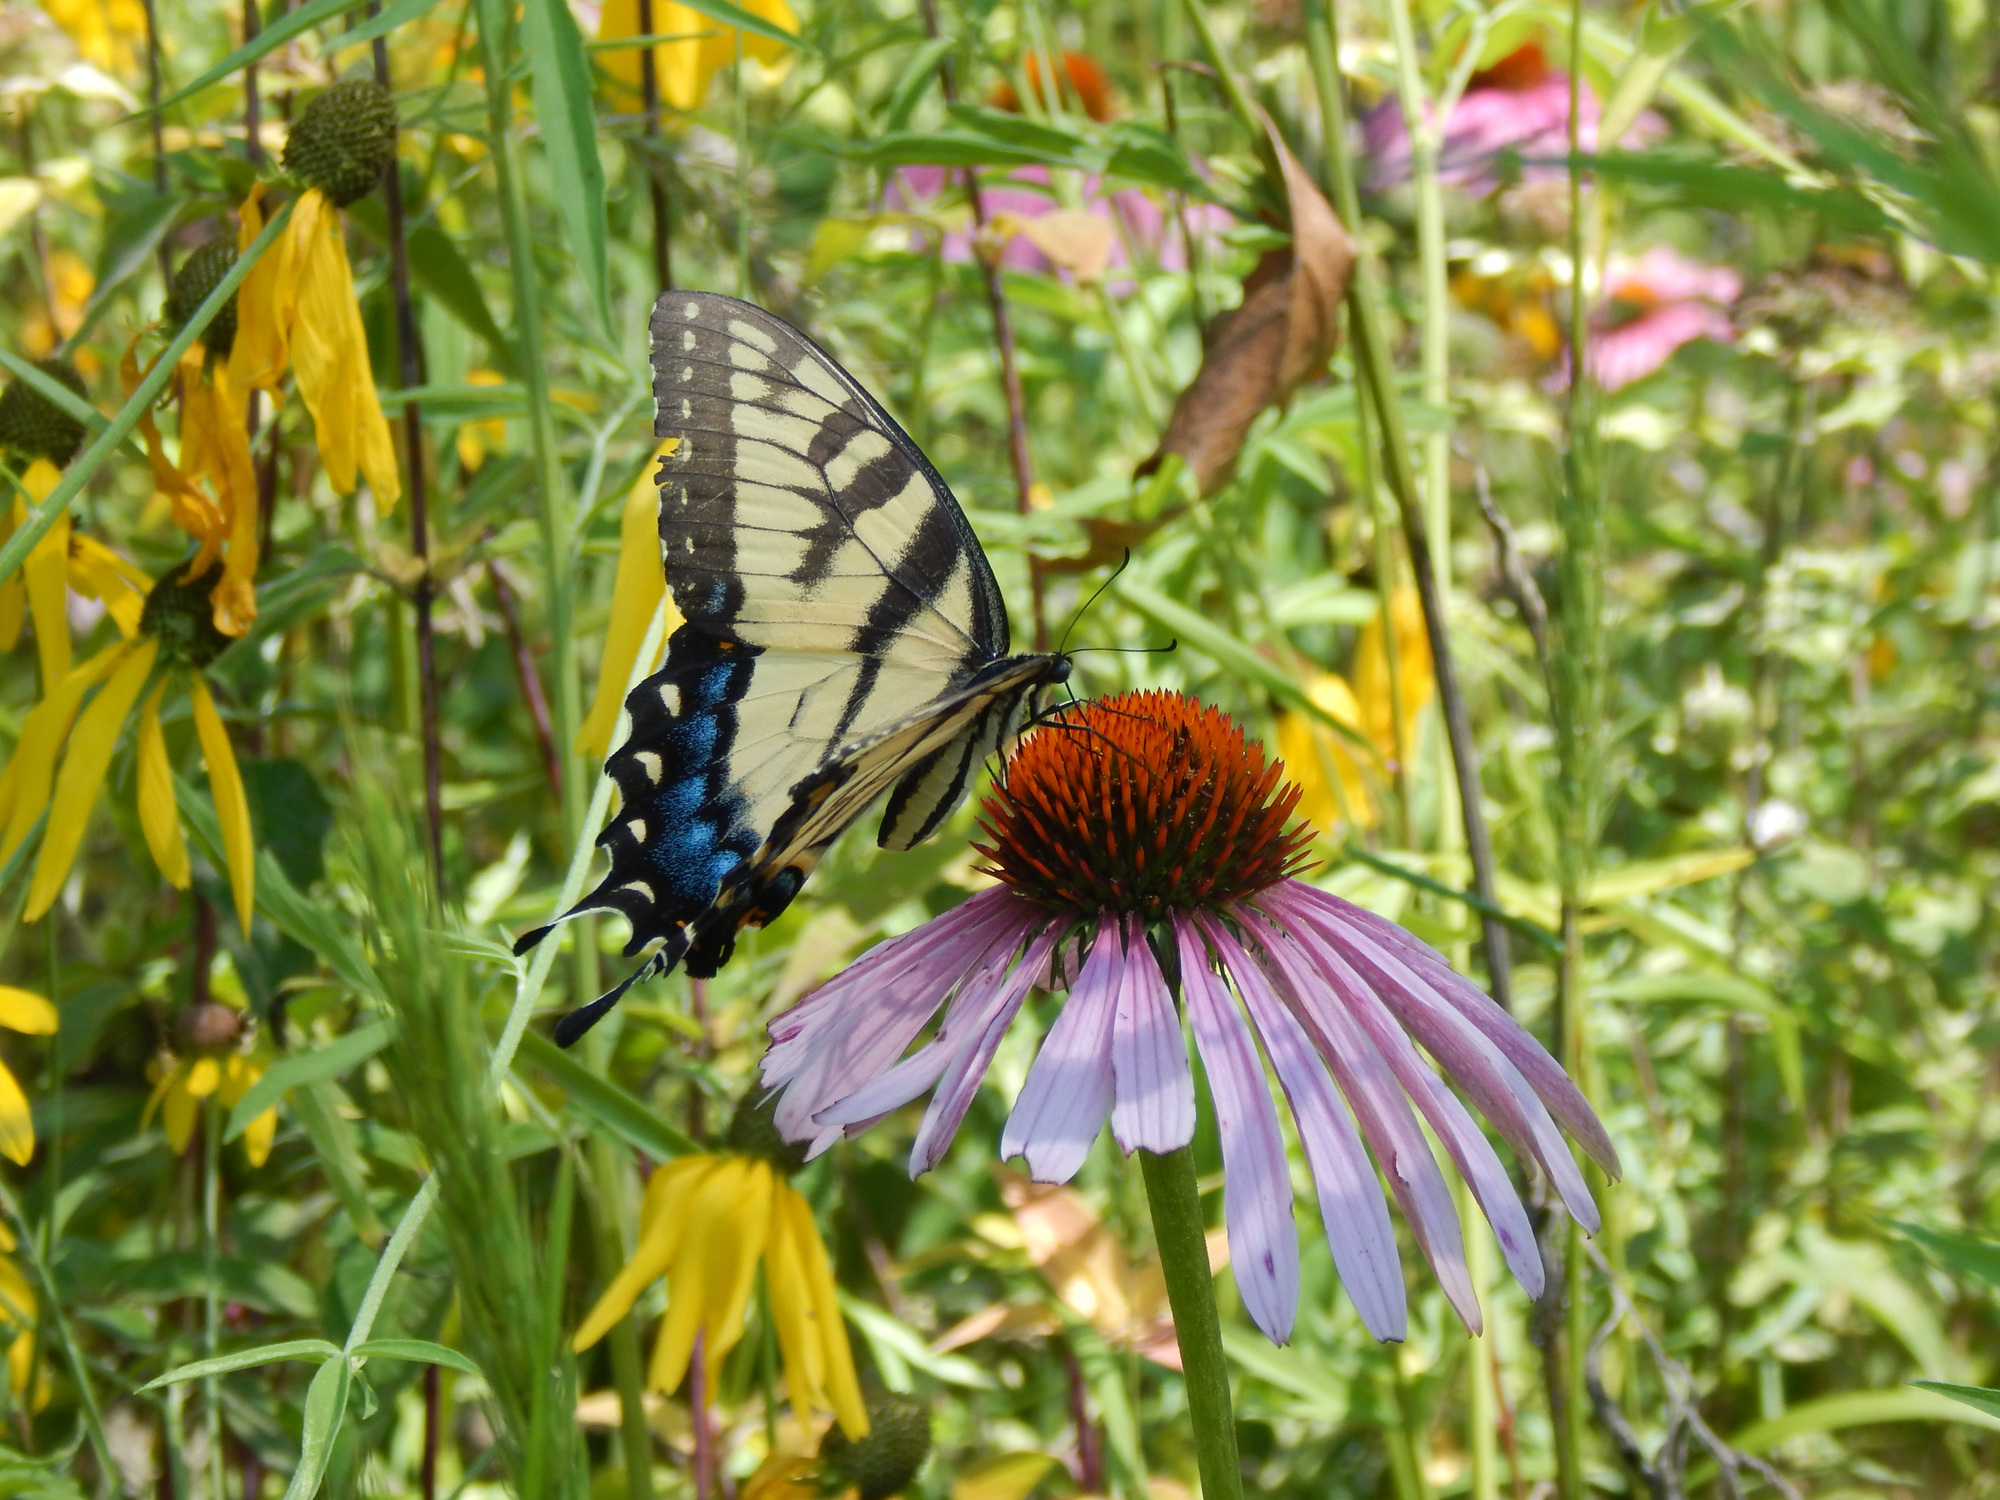 An elegant-looking yellow swallowtail butterfly is sitting on a purple flower.